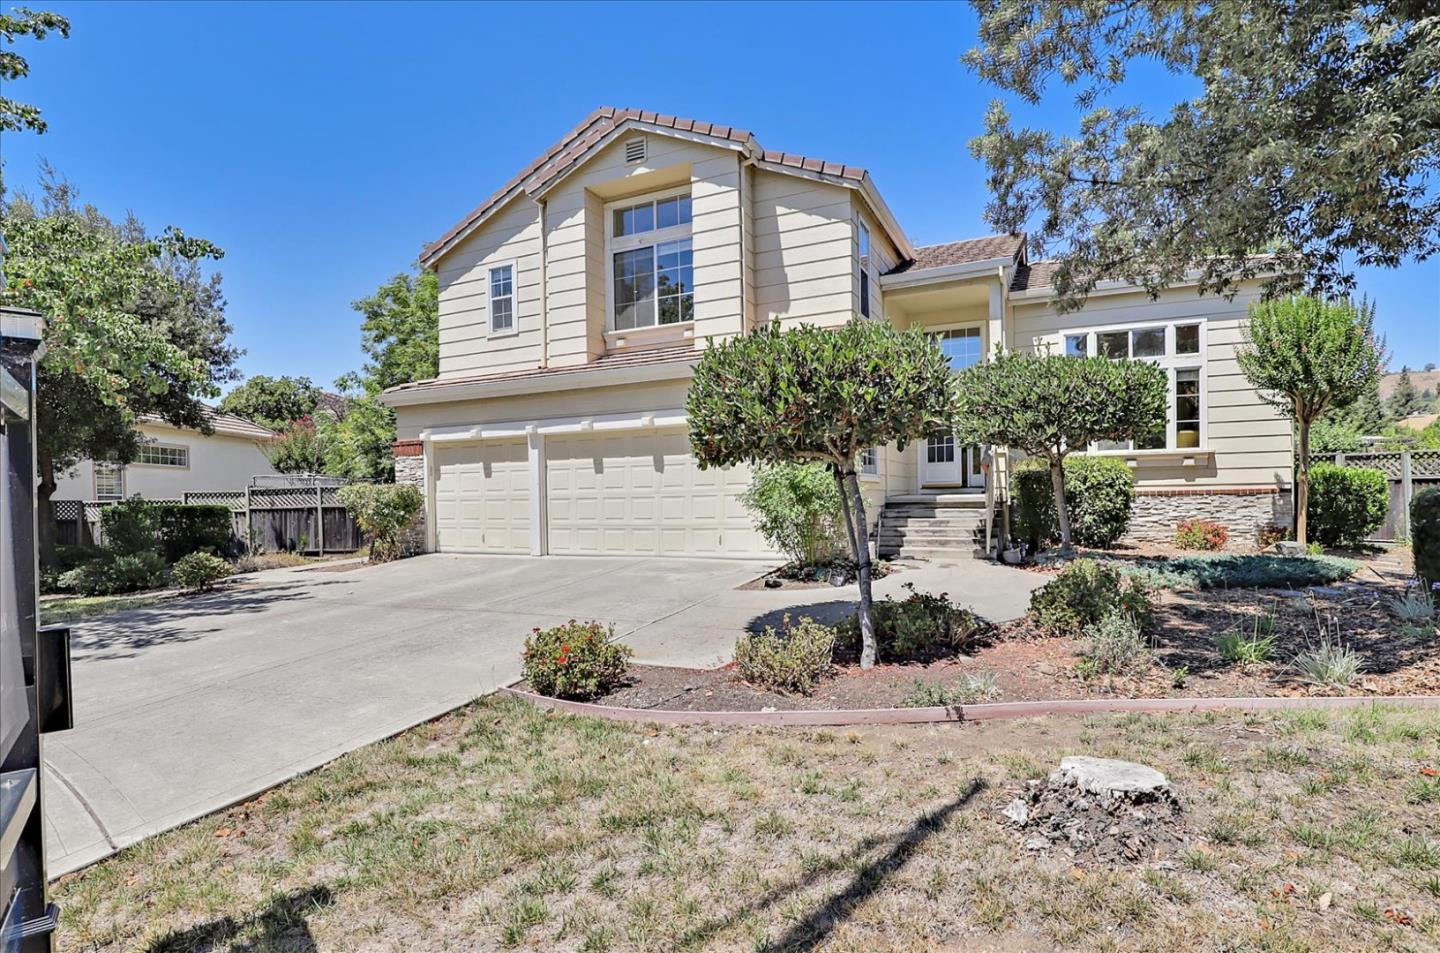 Detail Gallery Image 1 of 1 For 2683 Calico Ct, Morgan Hill,  CA 95037 - 4 Beds   2/1 Baths